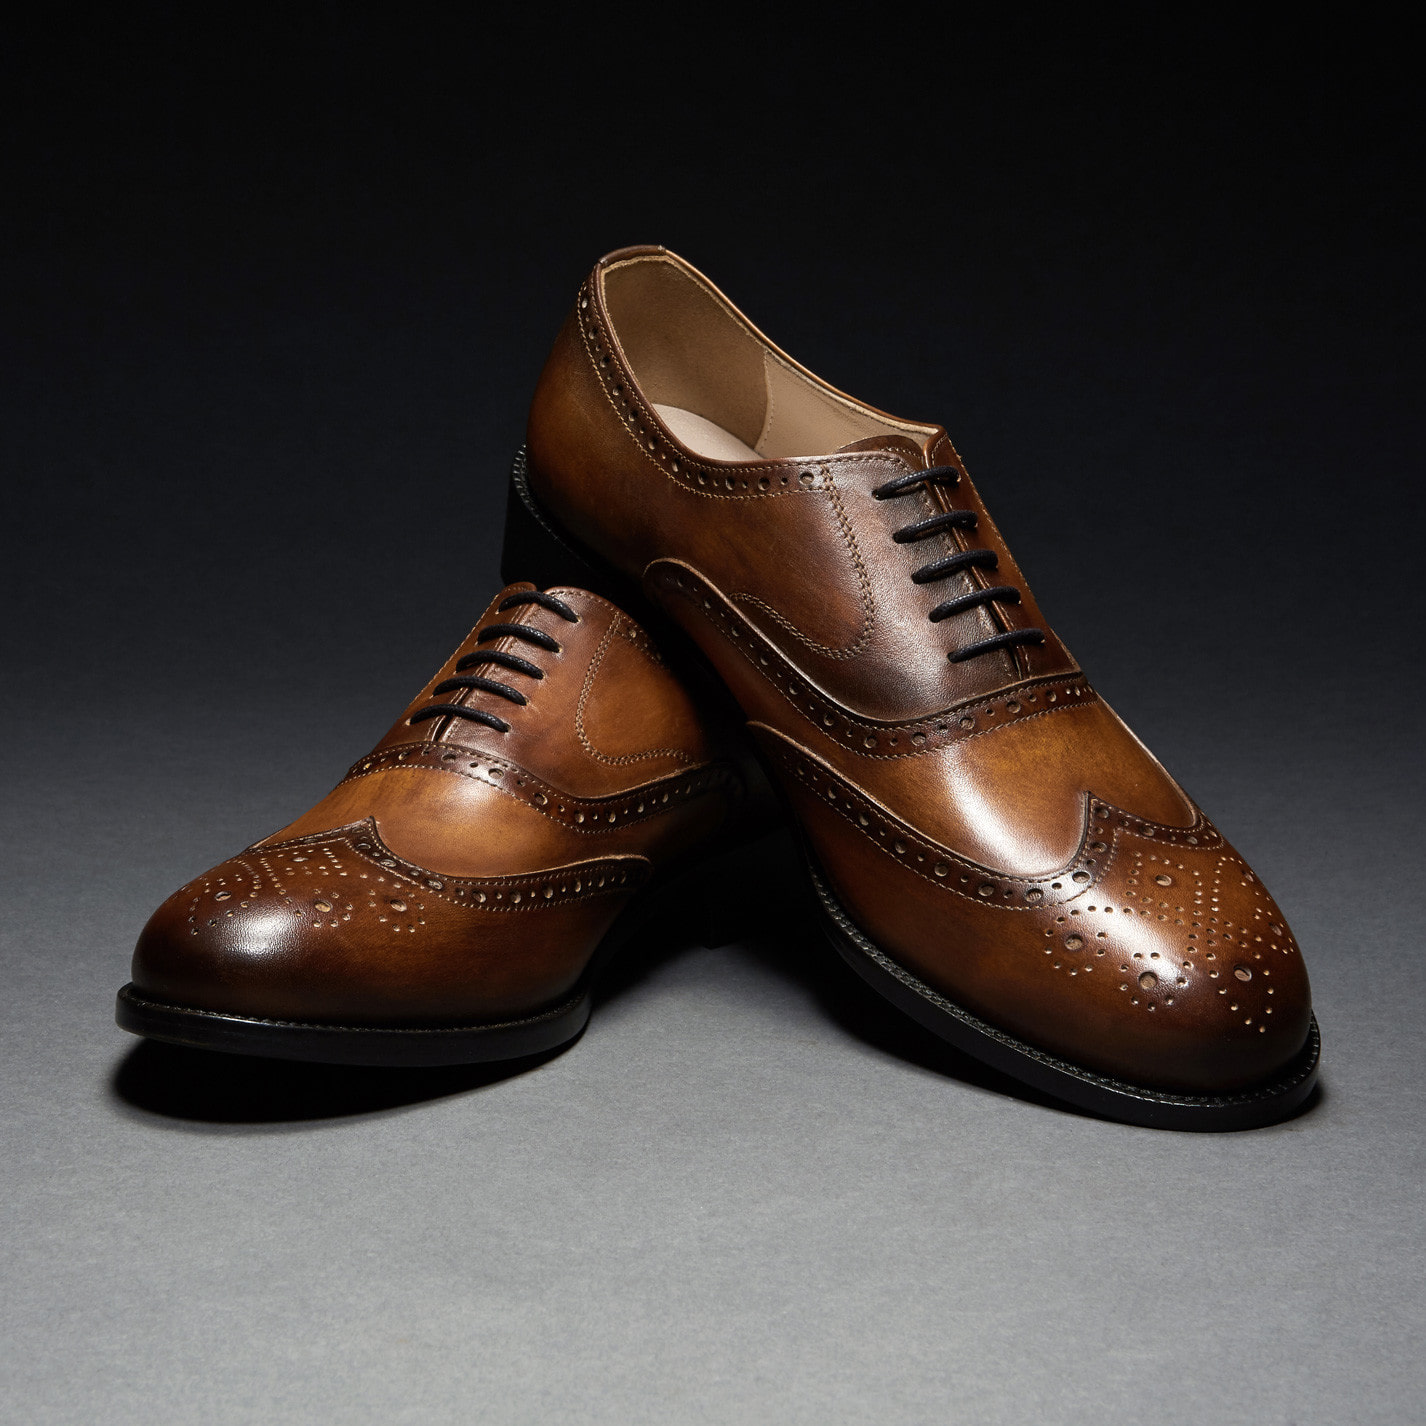 [Custommania X The shuri] PATINA WING TIP OXFORD OFR No.241